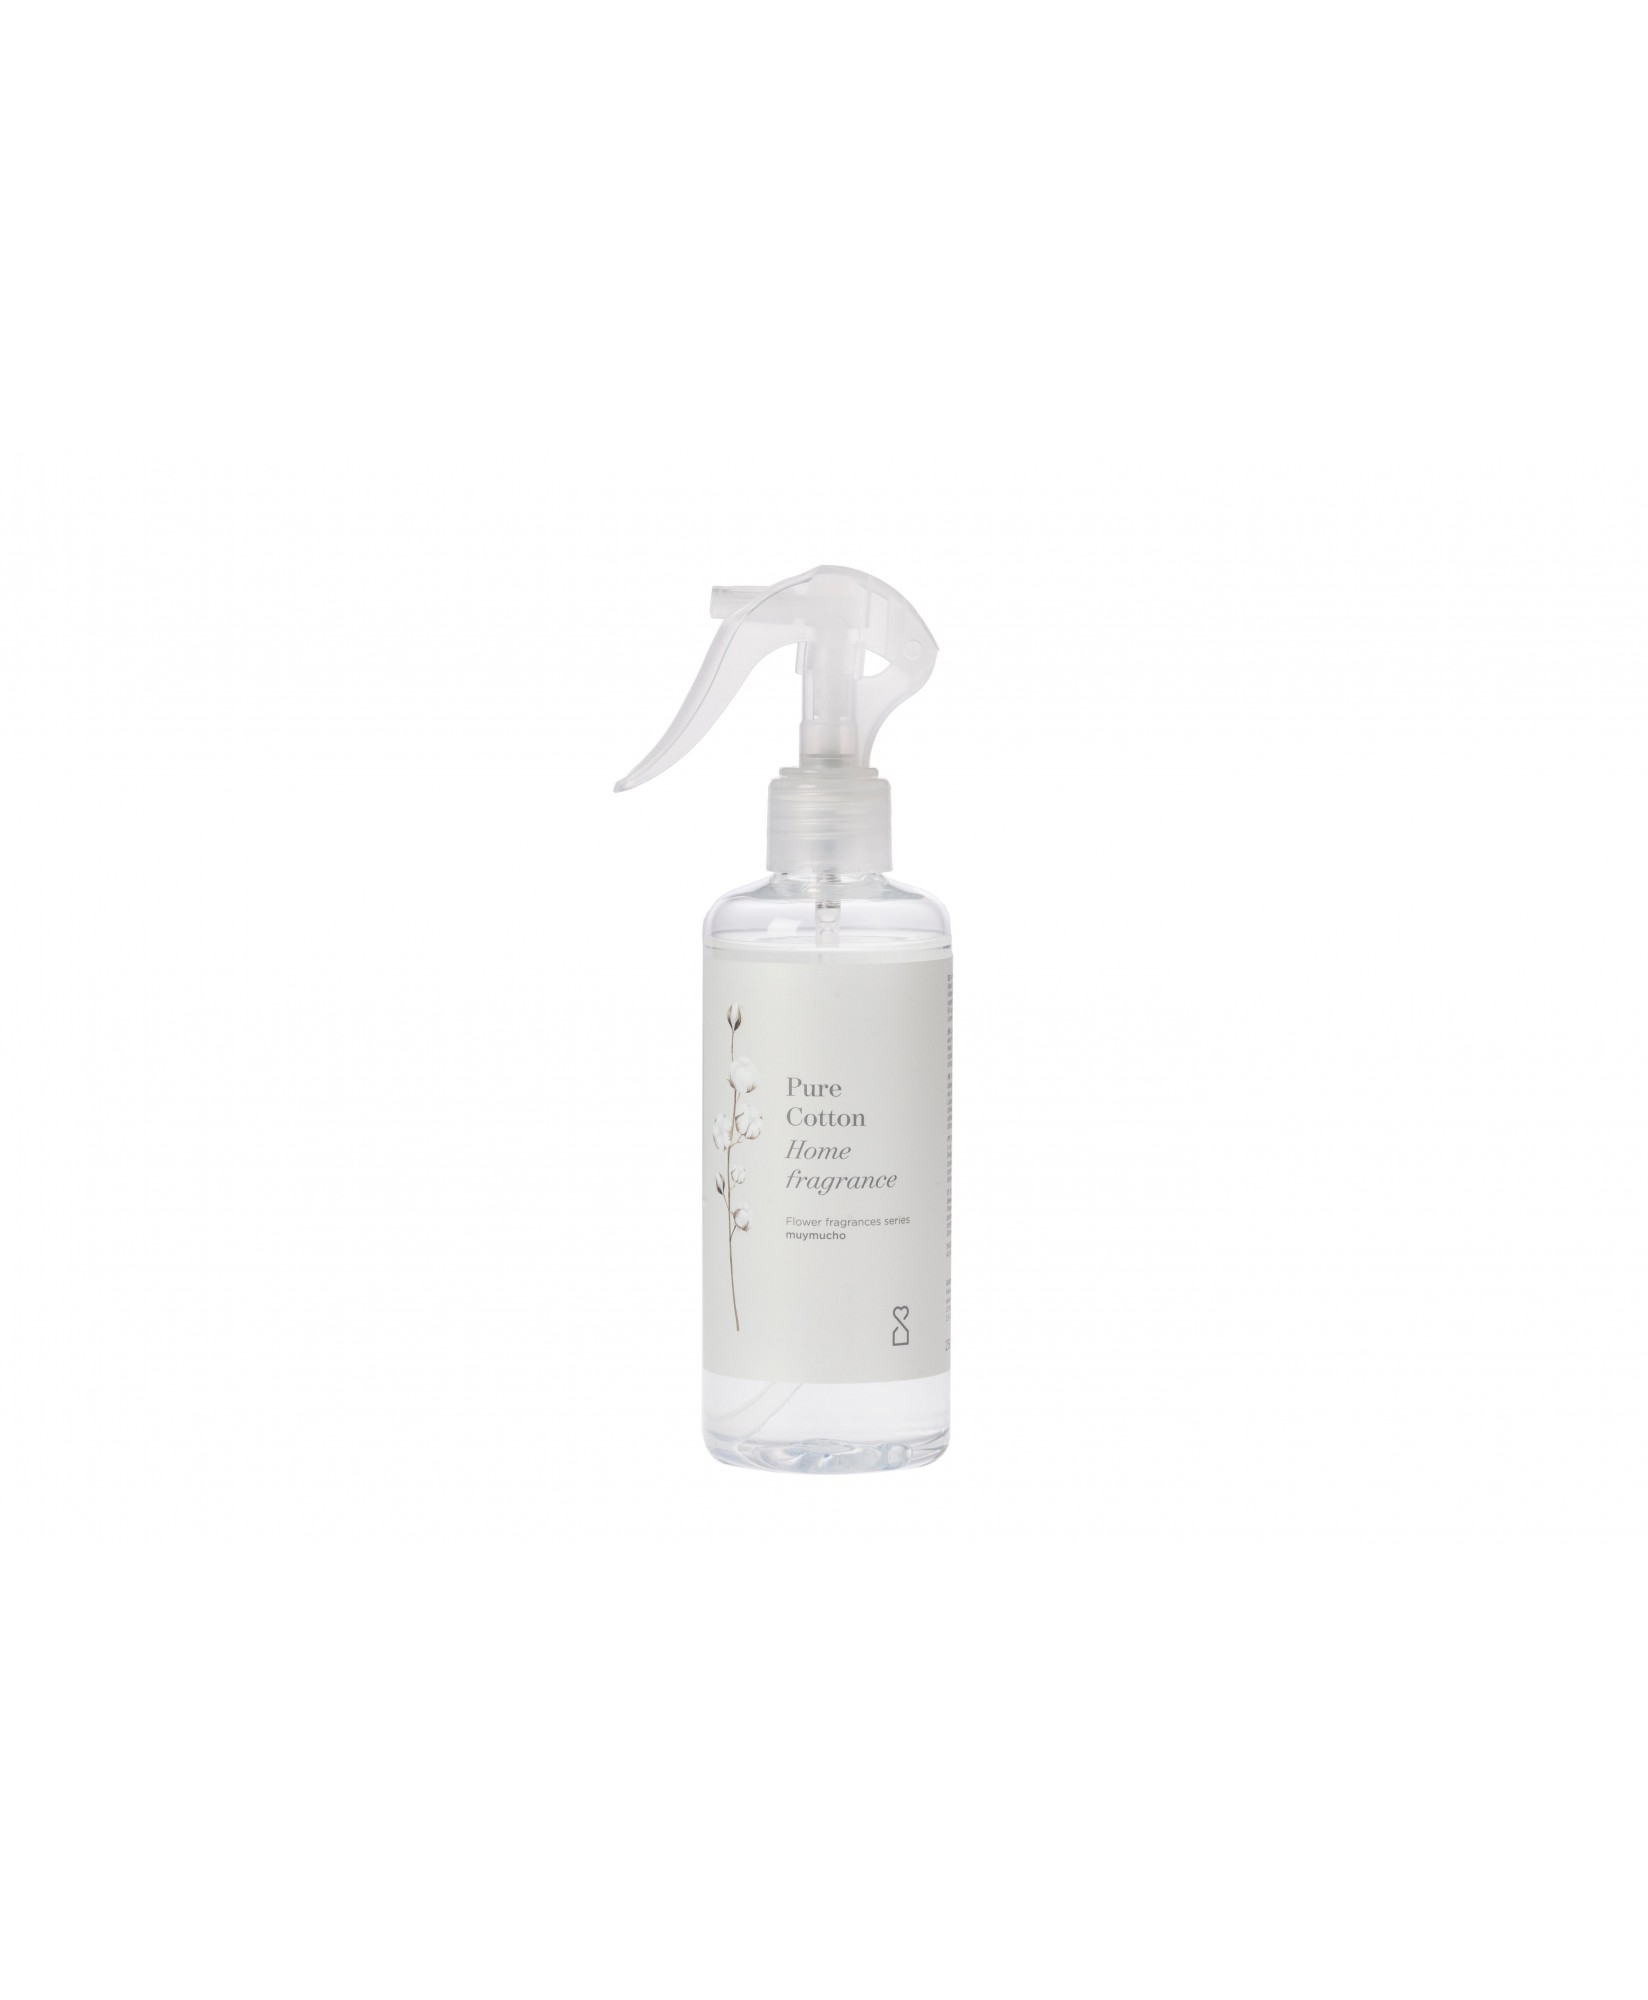 AMBIENTADOR SPRAY PURE COTTON 250ML AMBIENTADOR SPRAY PURE COTTON 250ML